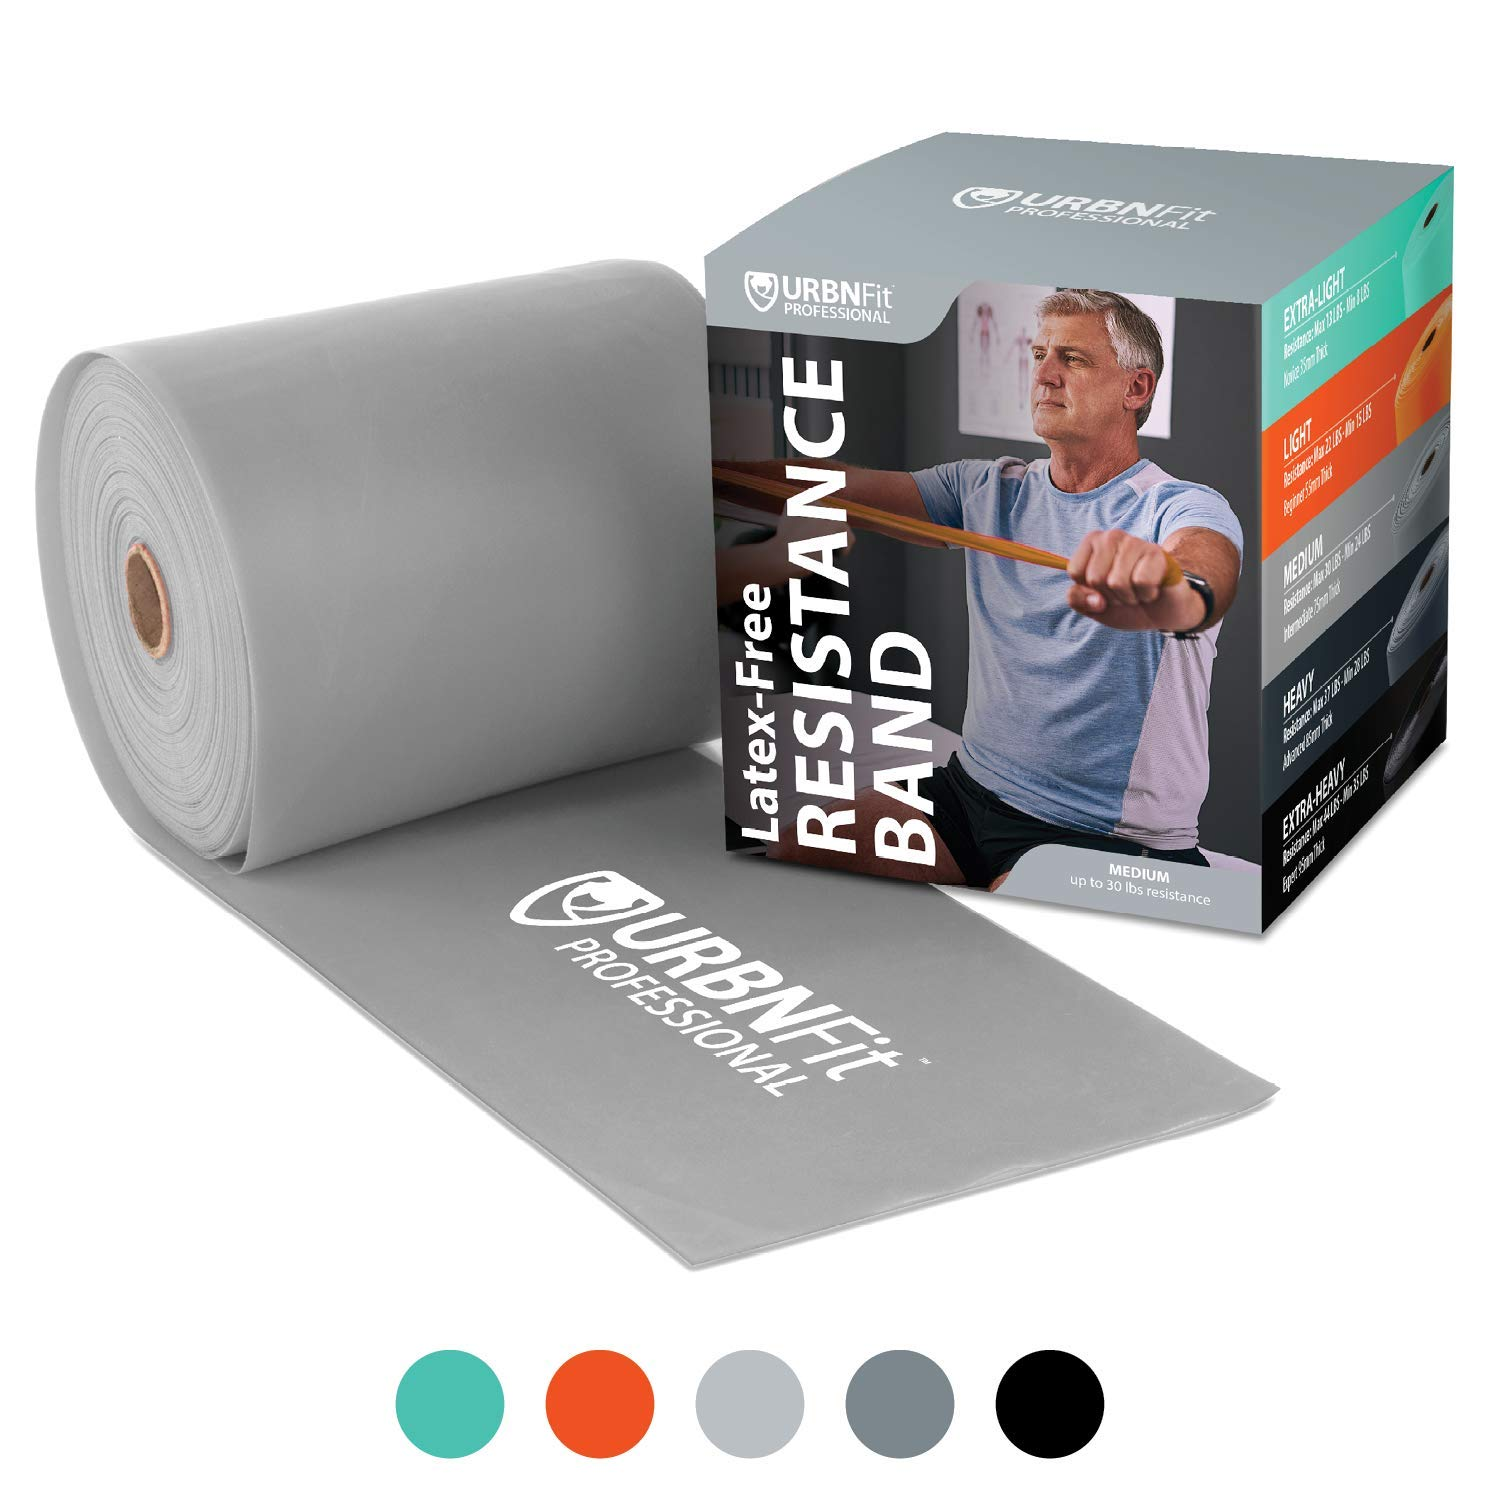 Professional Resistance Bands - 25 Yards (75ft) Latex-Free Elastic Exercise Fitness Band Roll - No Scent, No Powder - Perfect for Physical Therapy & Rehab, Yoga, Pilates (Grey - Medium Heavy .75mm)